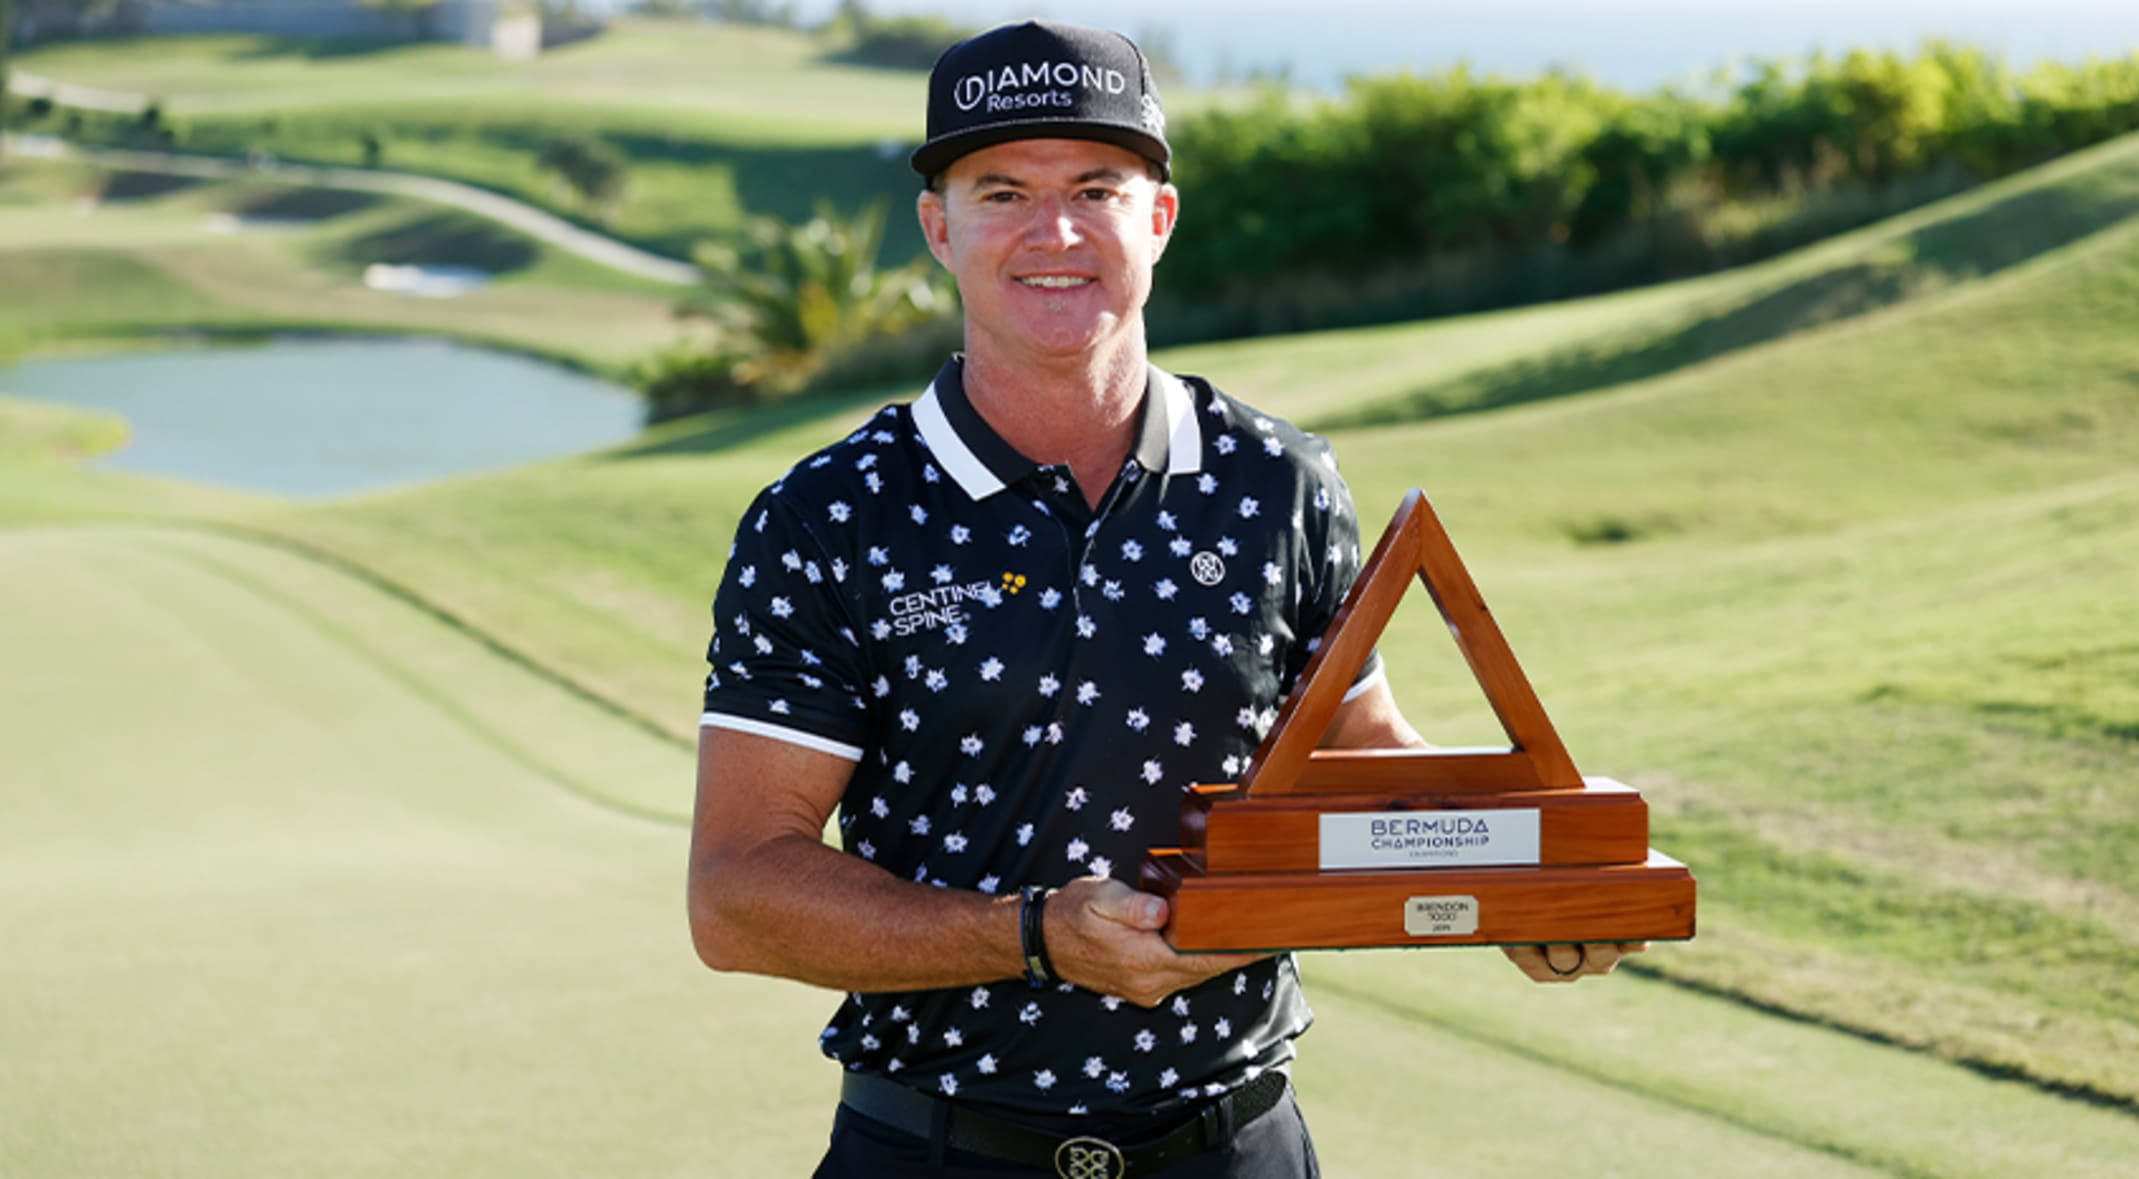 Brian Gay wins Bermuda Championship for first title since 2013